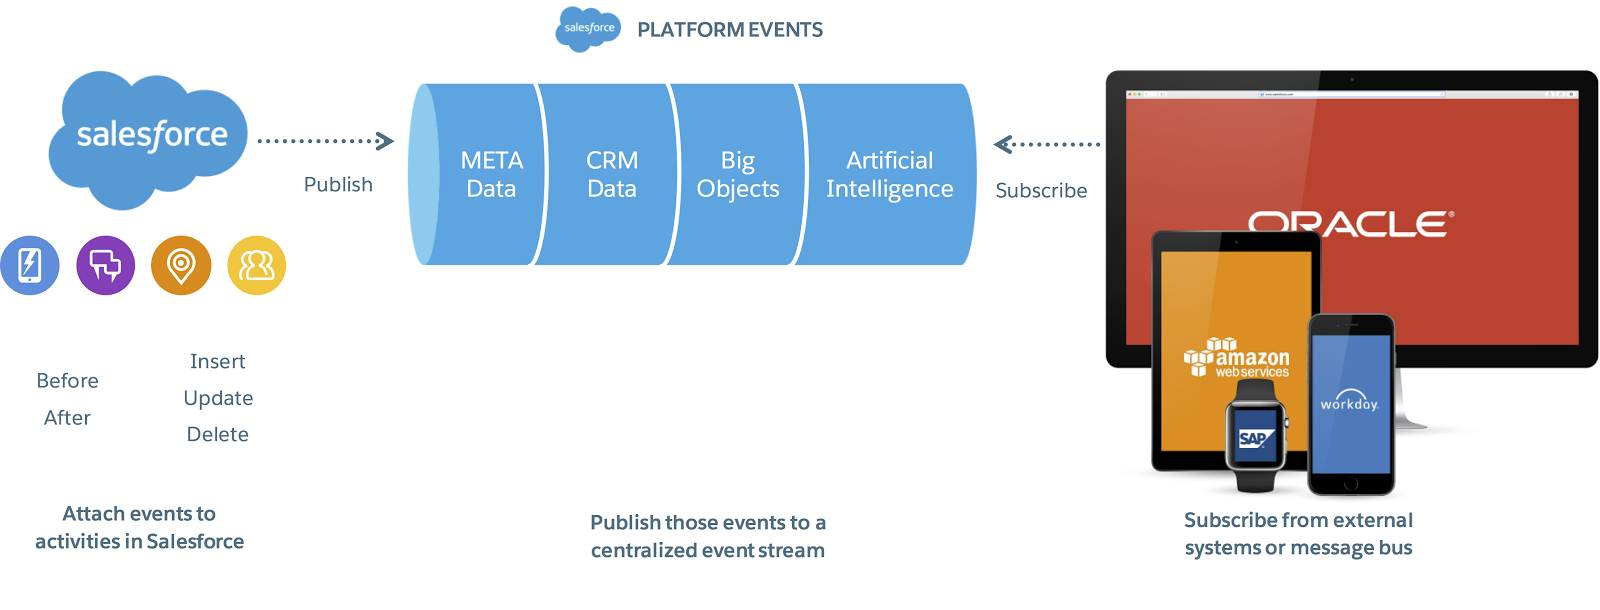 An infographic showing the flow of event publishing, from activities in Salesforce to a centralized event stream to external systems such as SAP, AWS, and Workday